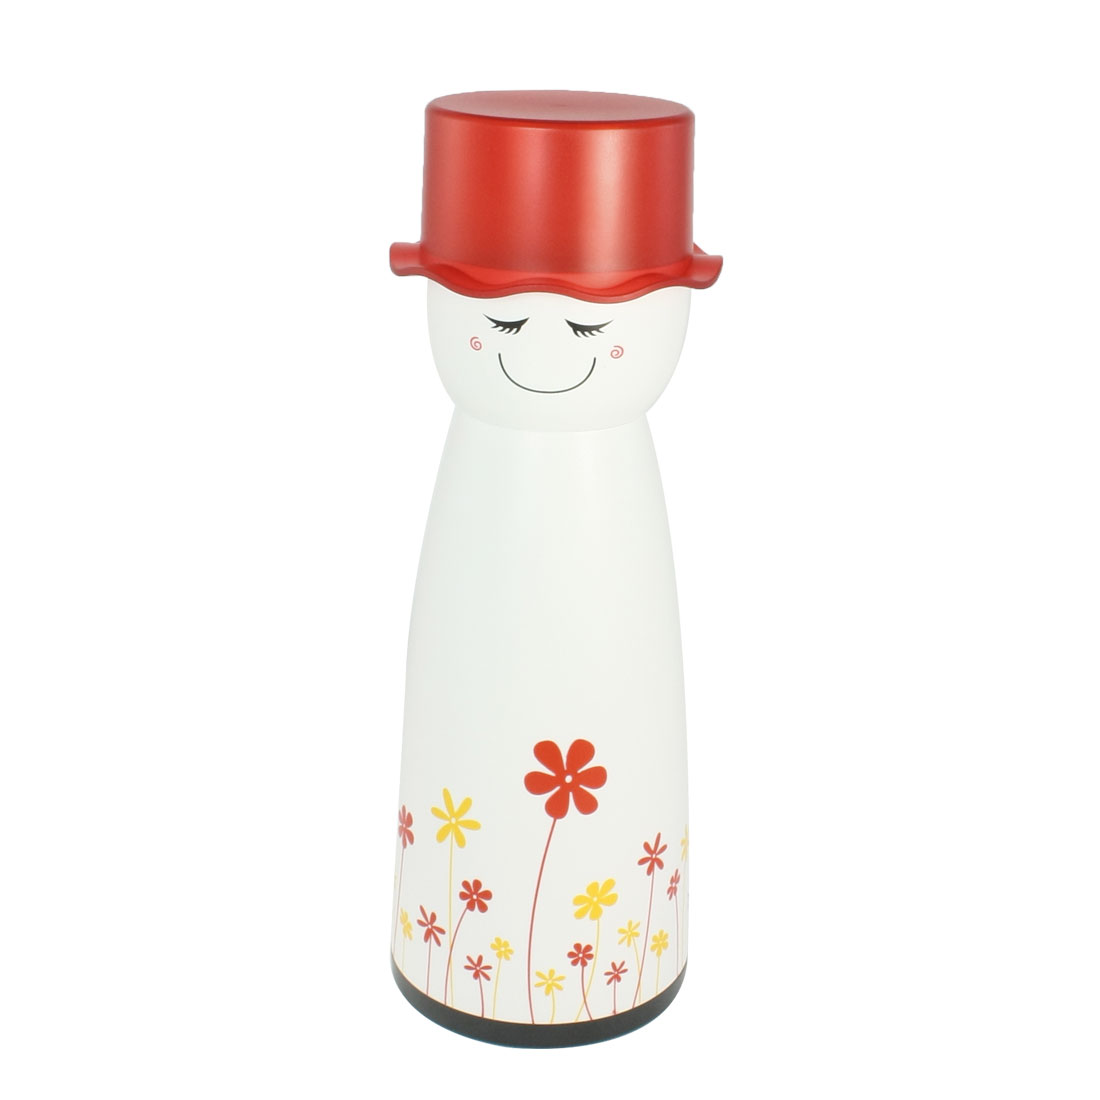 Snowman Shaped Red Yellow Flowers Pattern Chopcticks Case Holder Canister